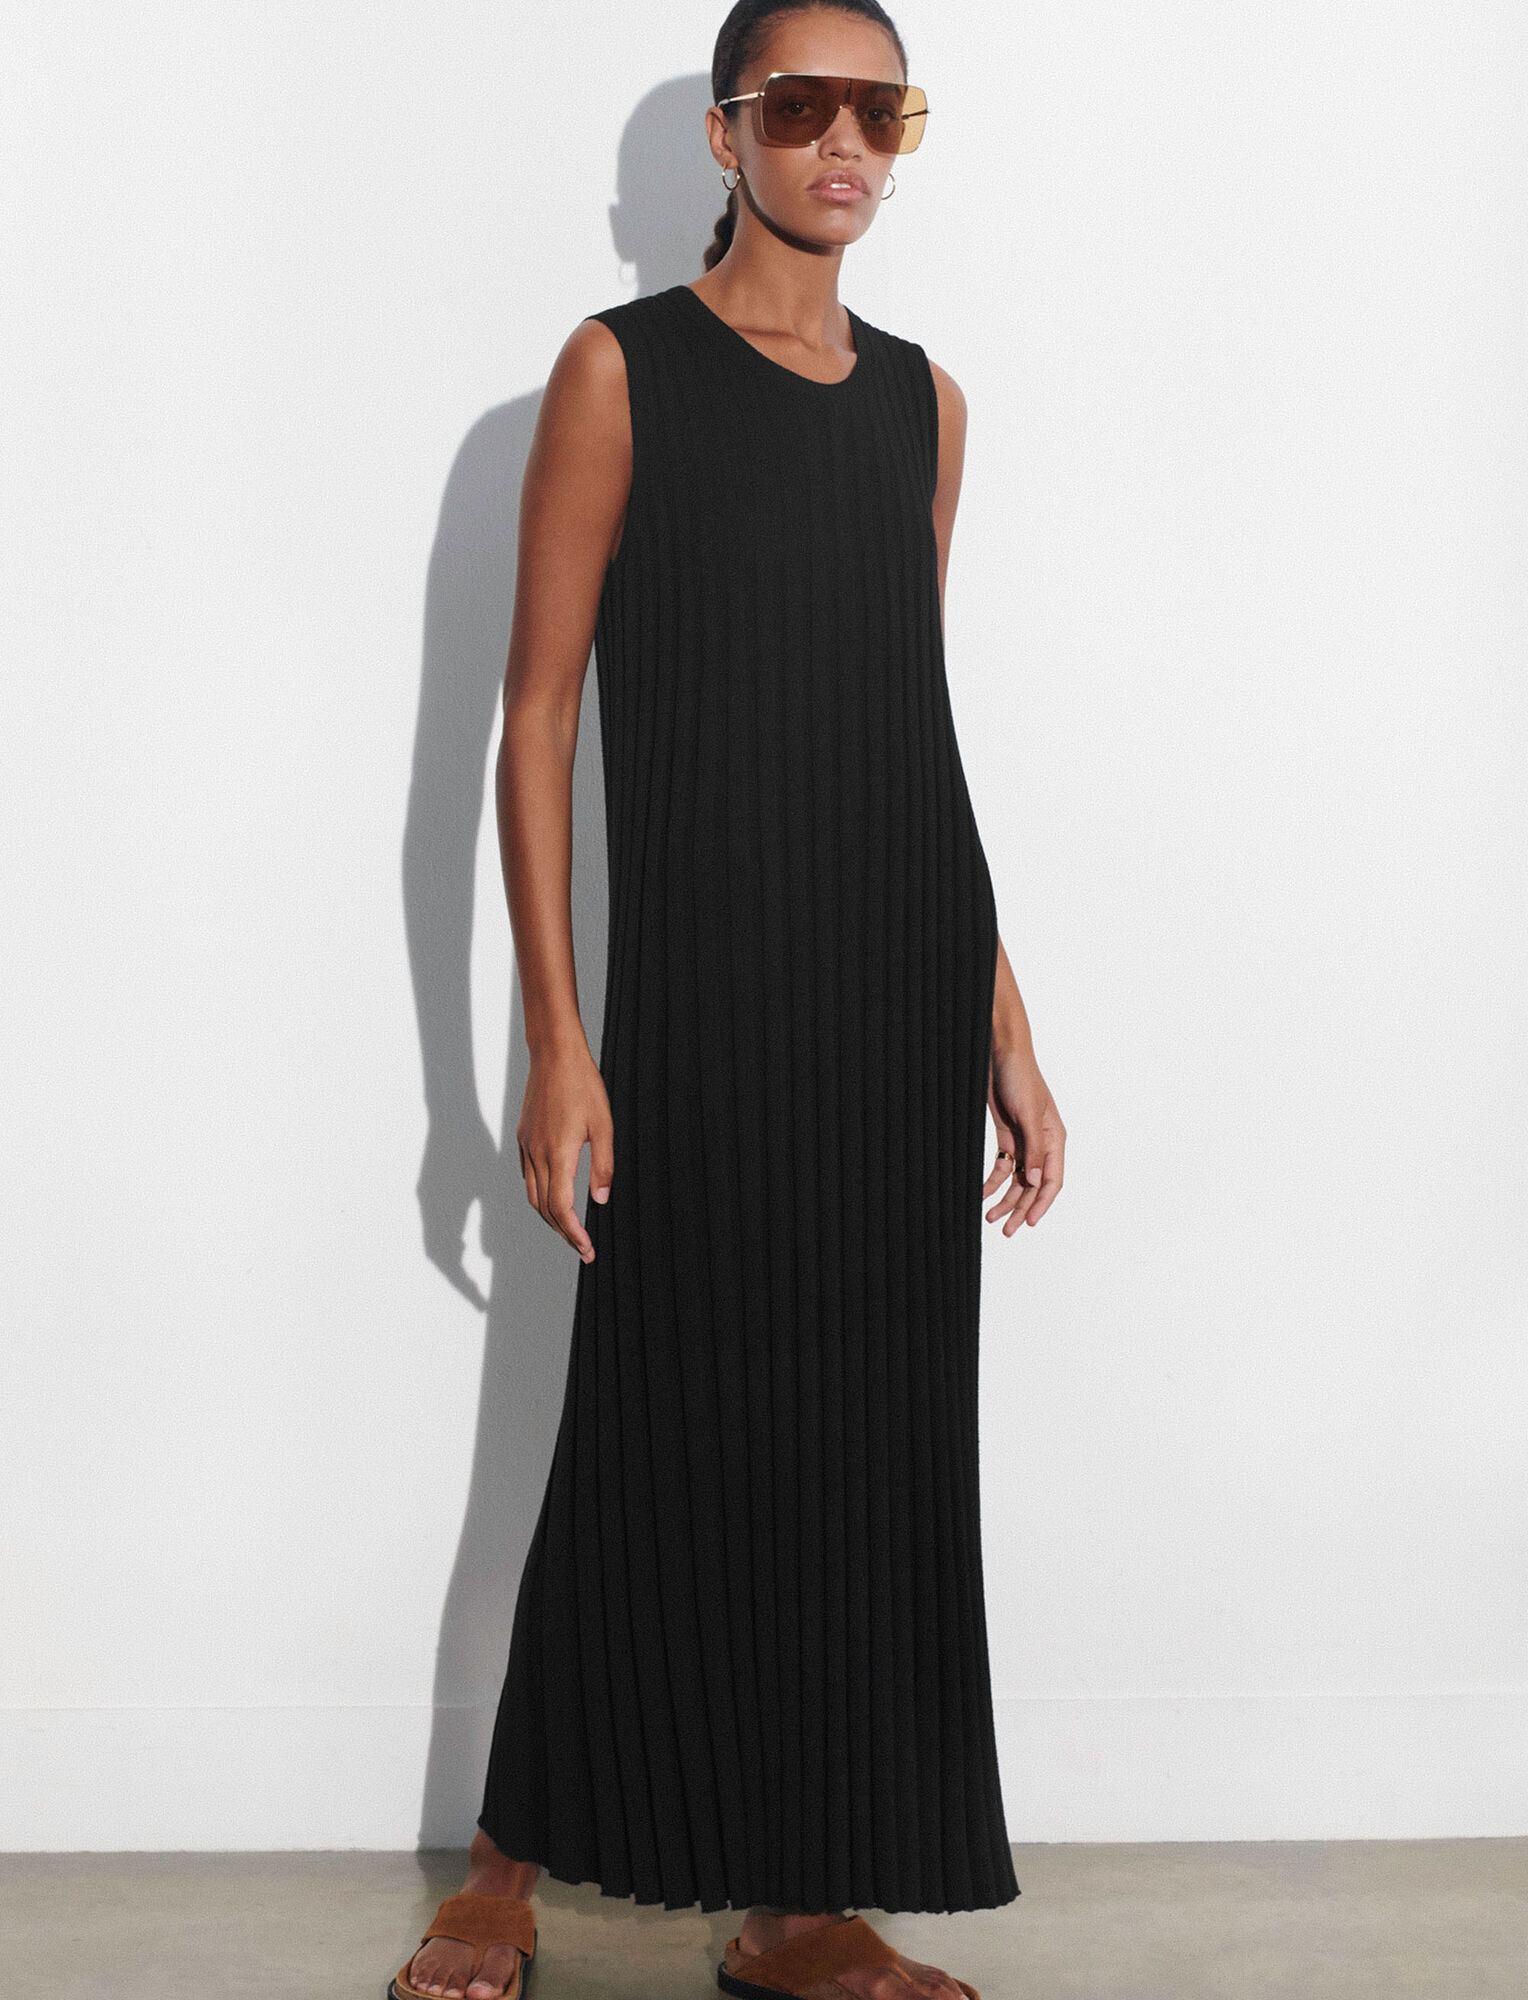 Joseph, Textured Rib Dress, in BLACK